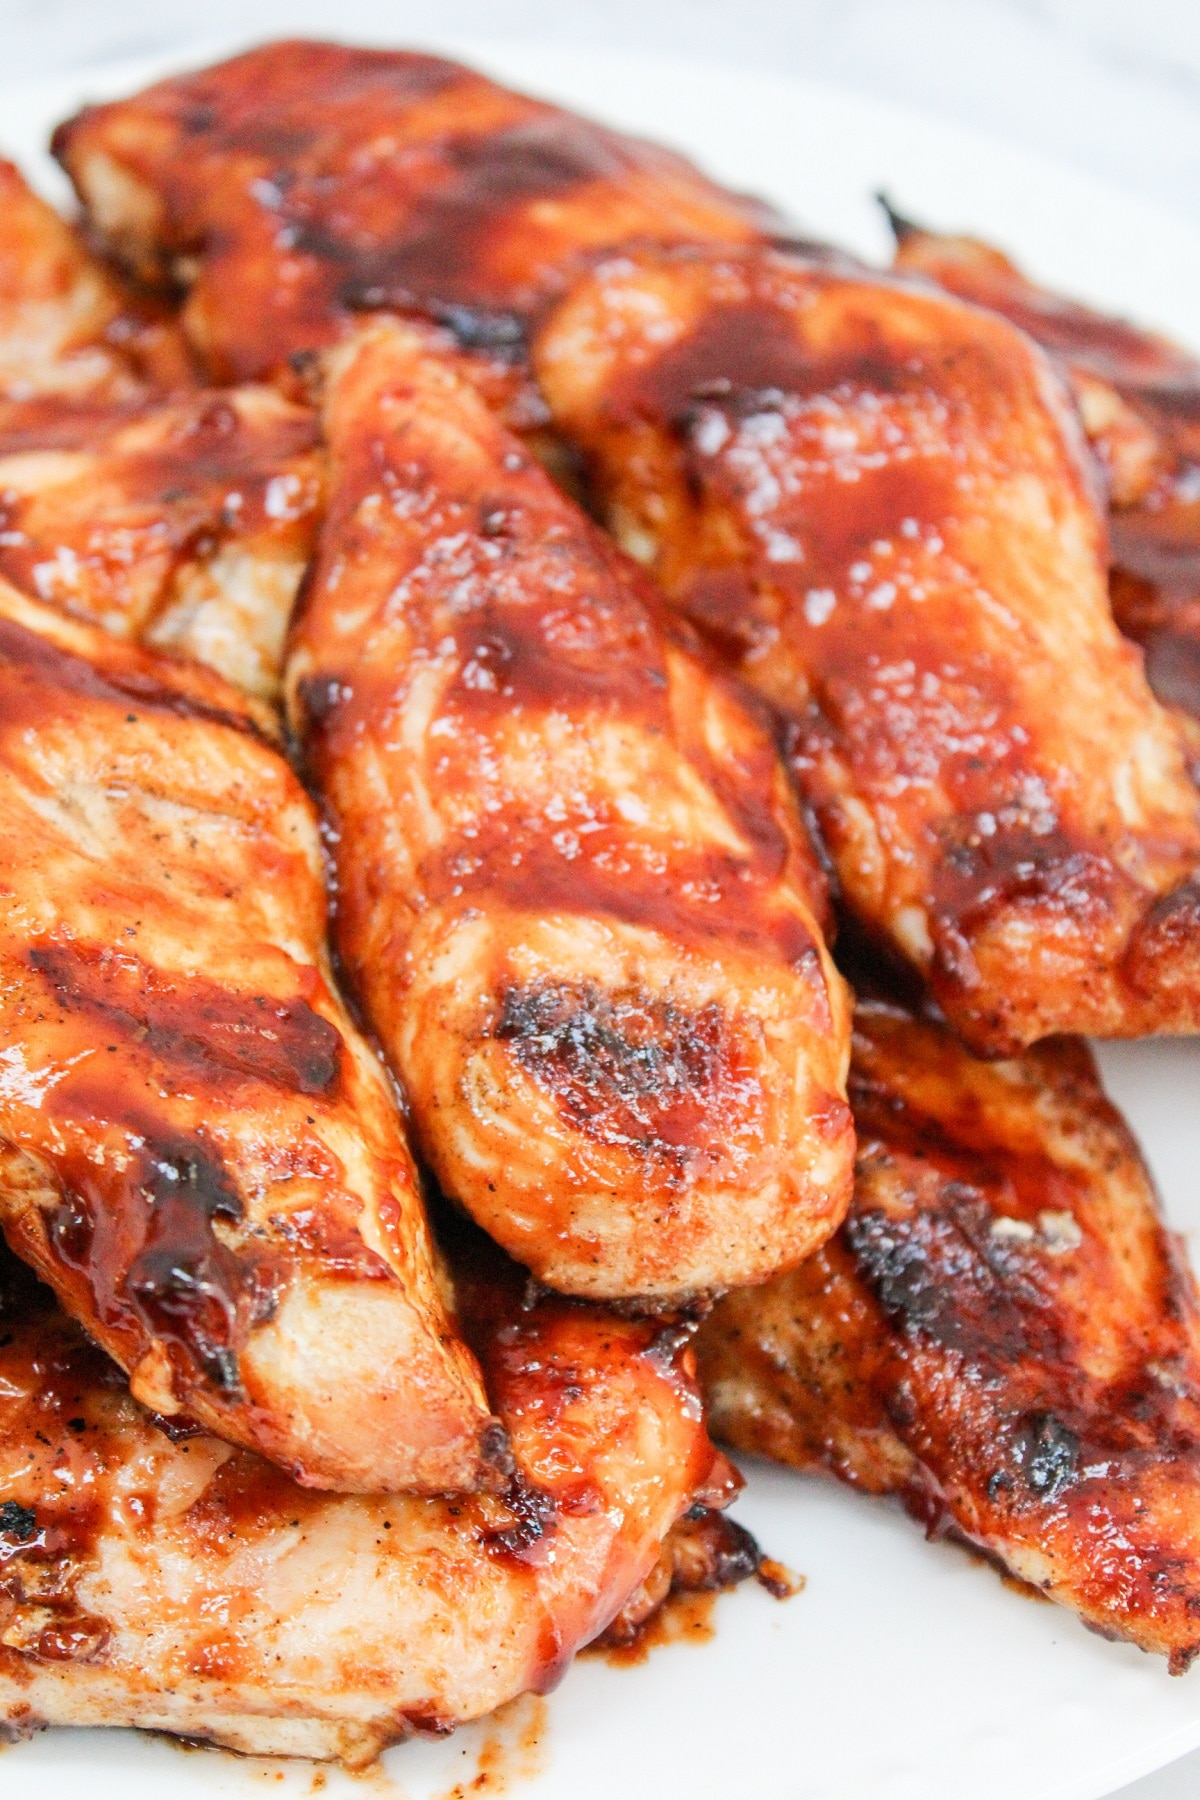 grilled bbq chicken on a white plate